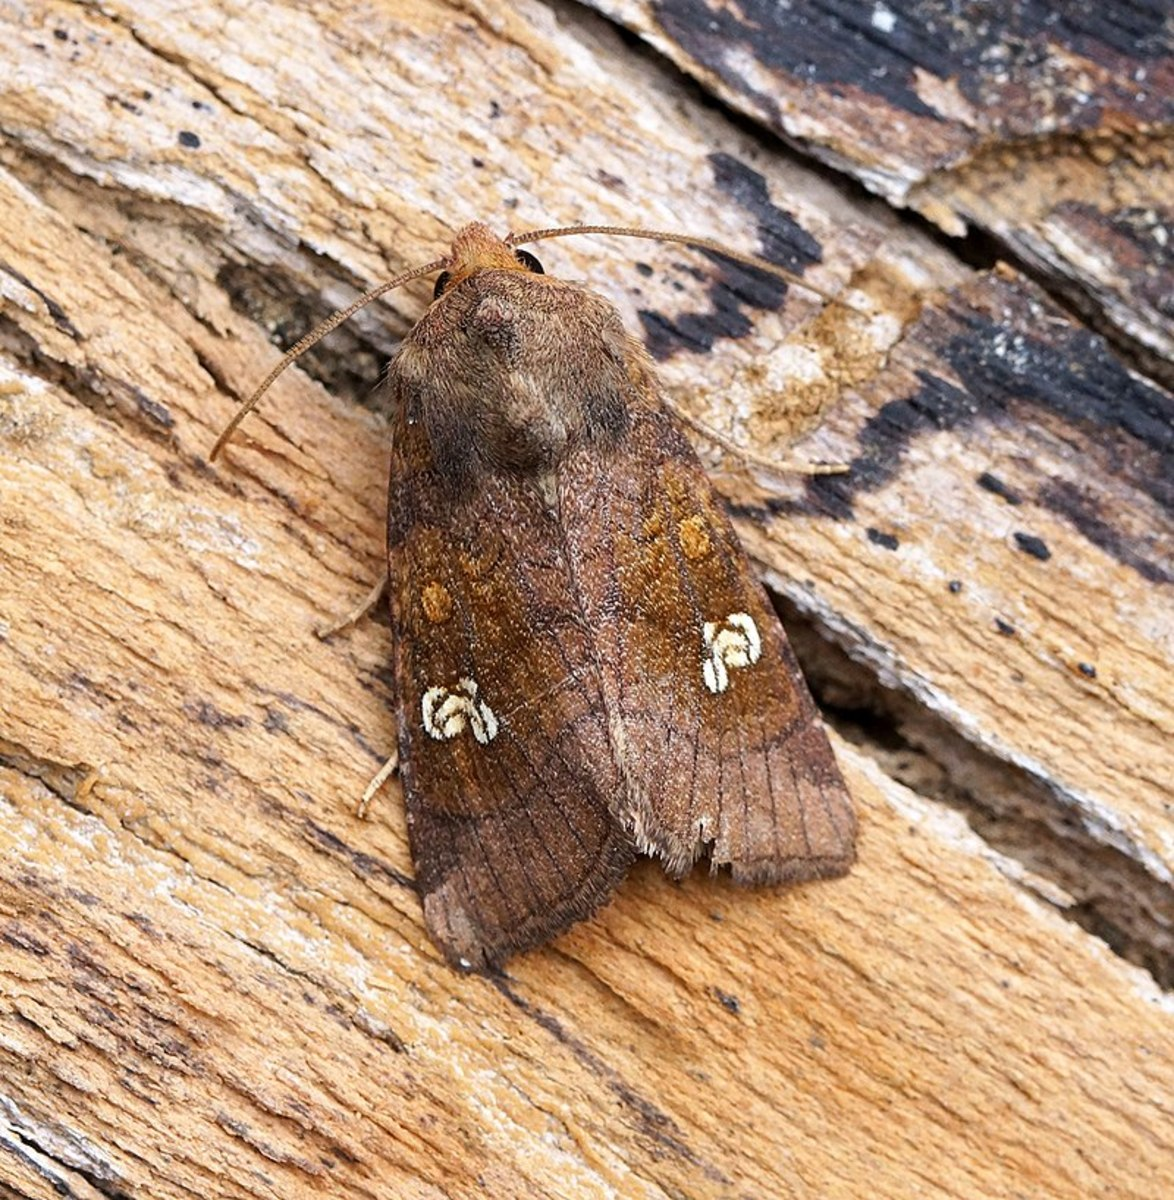 Cutworms are the larvae of the Dark Winged moth.